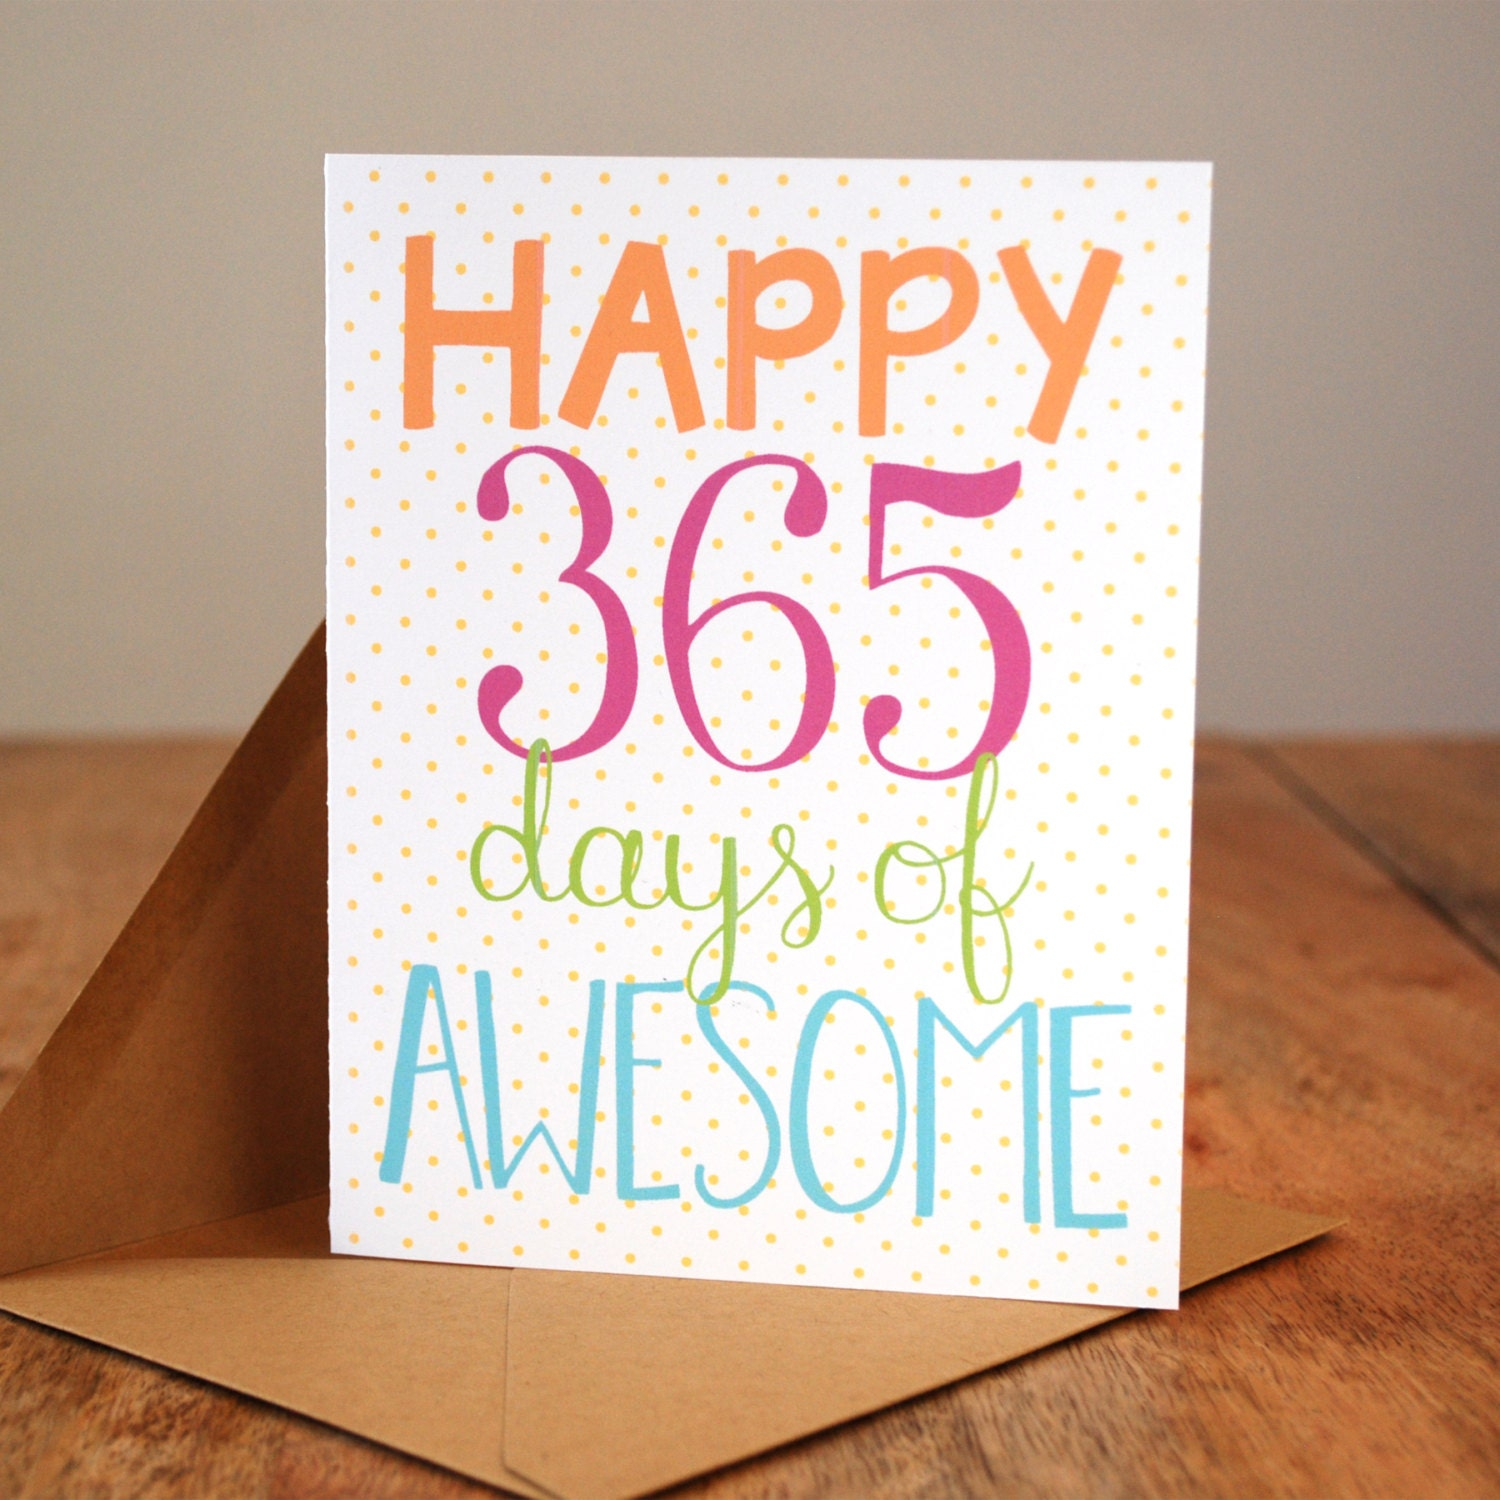 long love quotes for valentines day for him - Happy 365 Days of Awesome First Anniversary Card